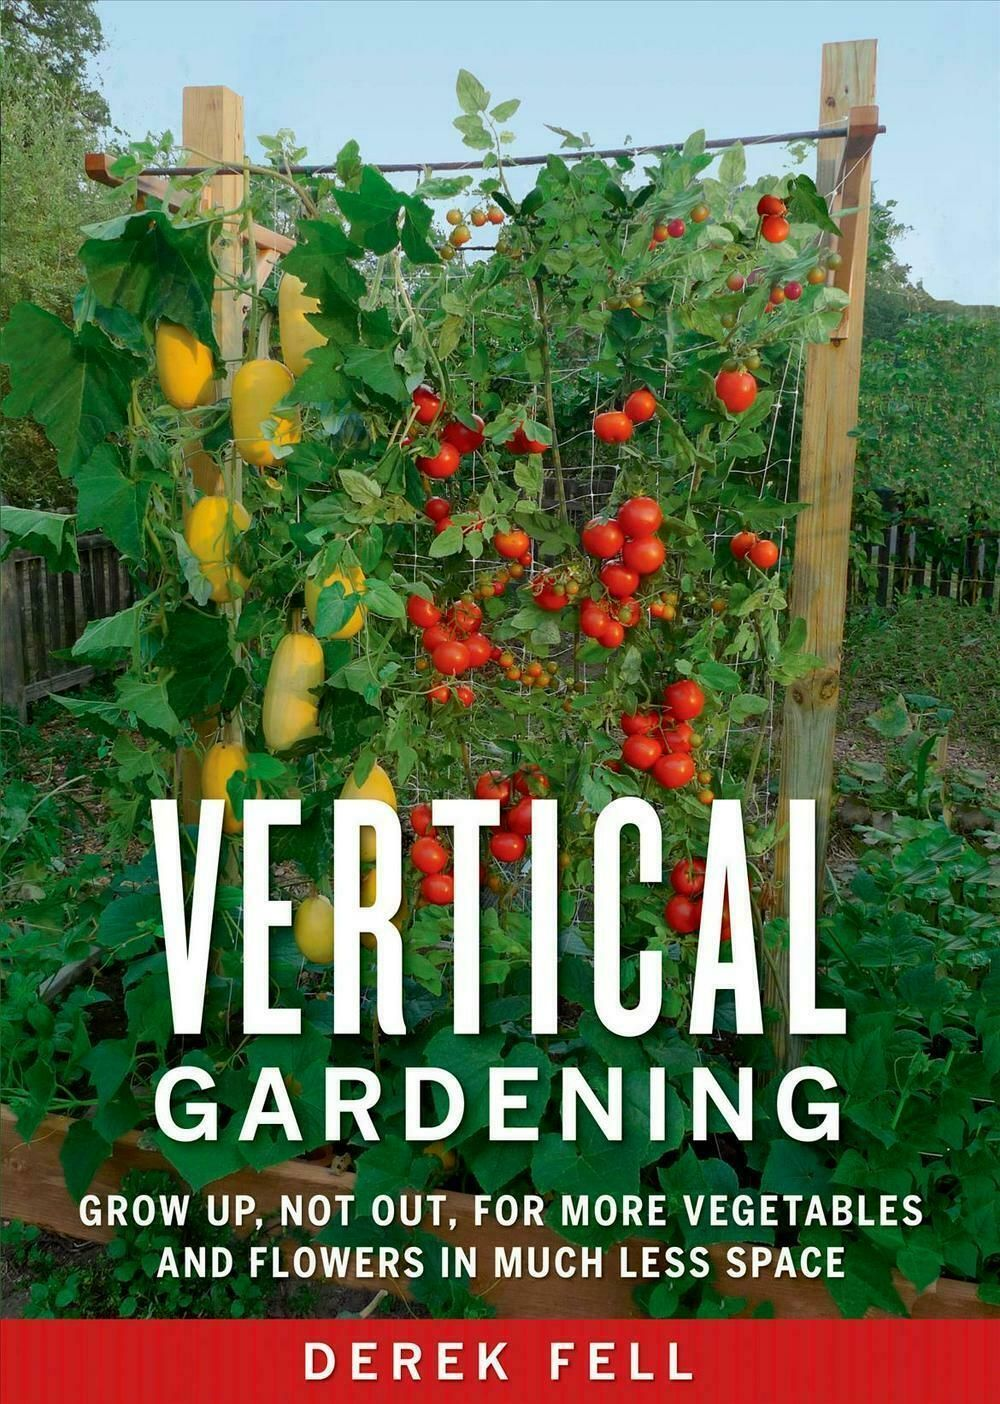 Details about Vertical Gardening Grow Up, Not Out, for More Vegetables and Flowers in Much Le is part of Vegetable garden design, Organic gardening tips, Vertical vegetable garden, Organic horticulture, Growing vegetables, Vertical garden -